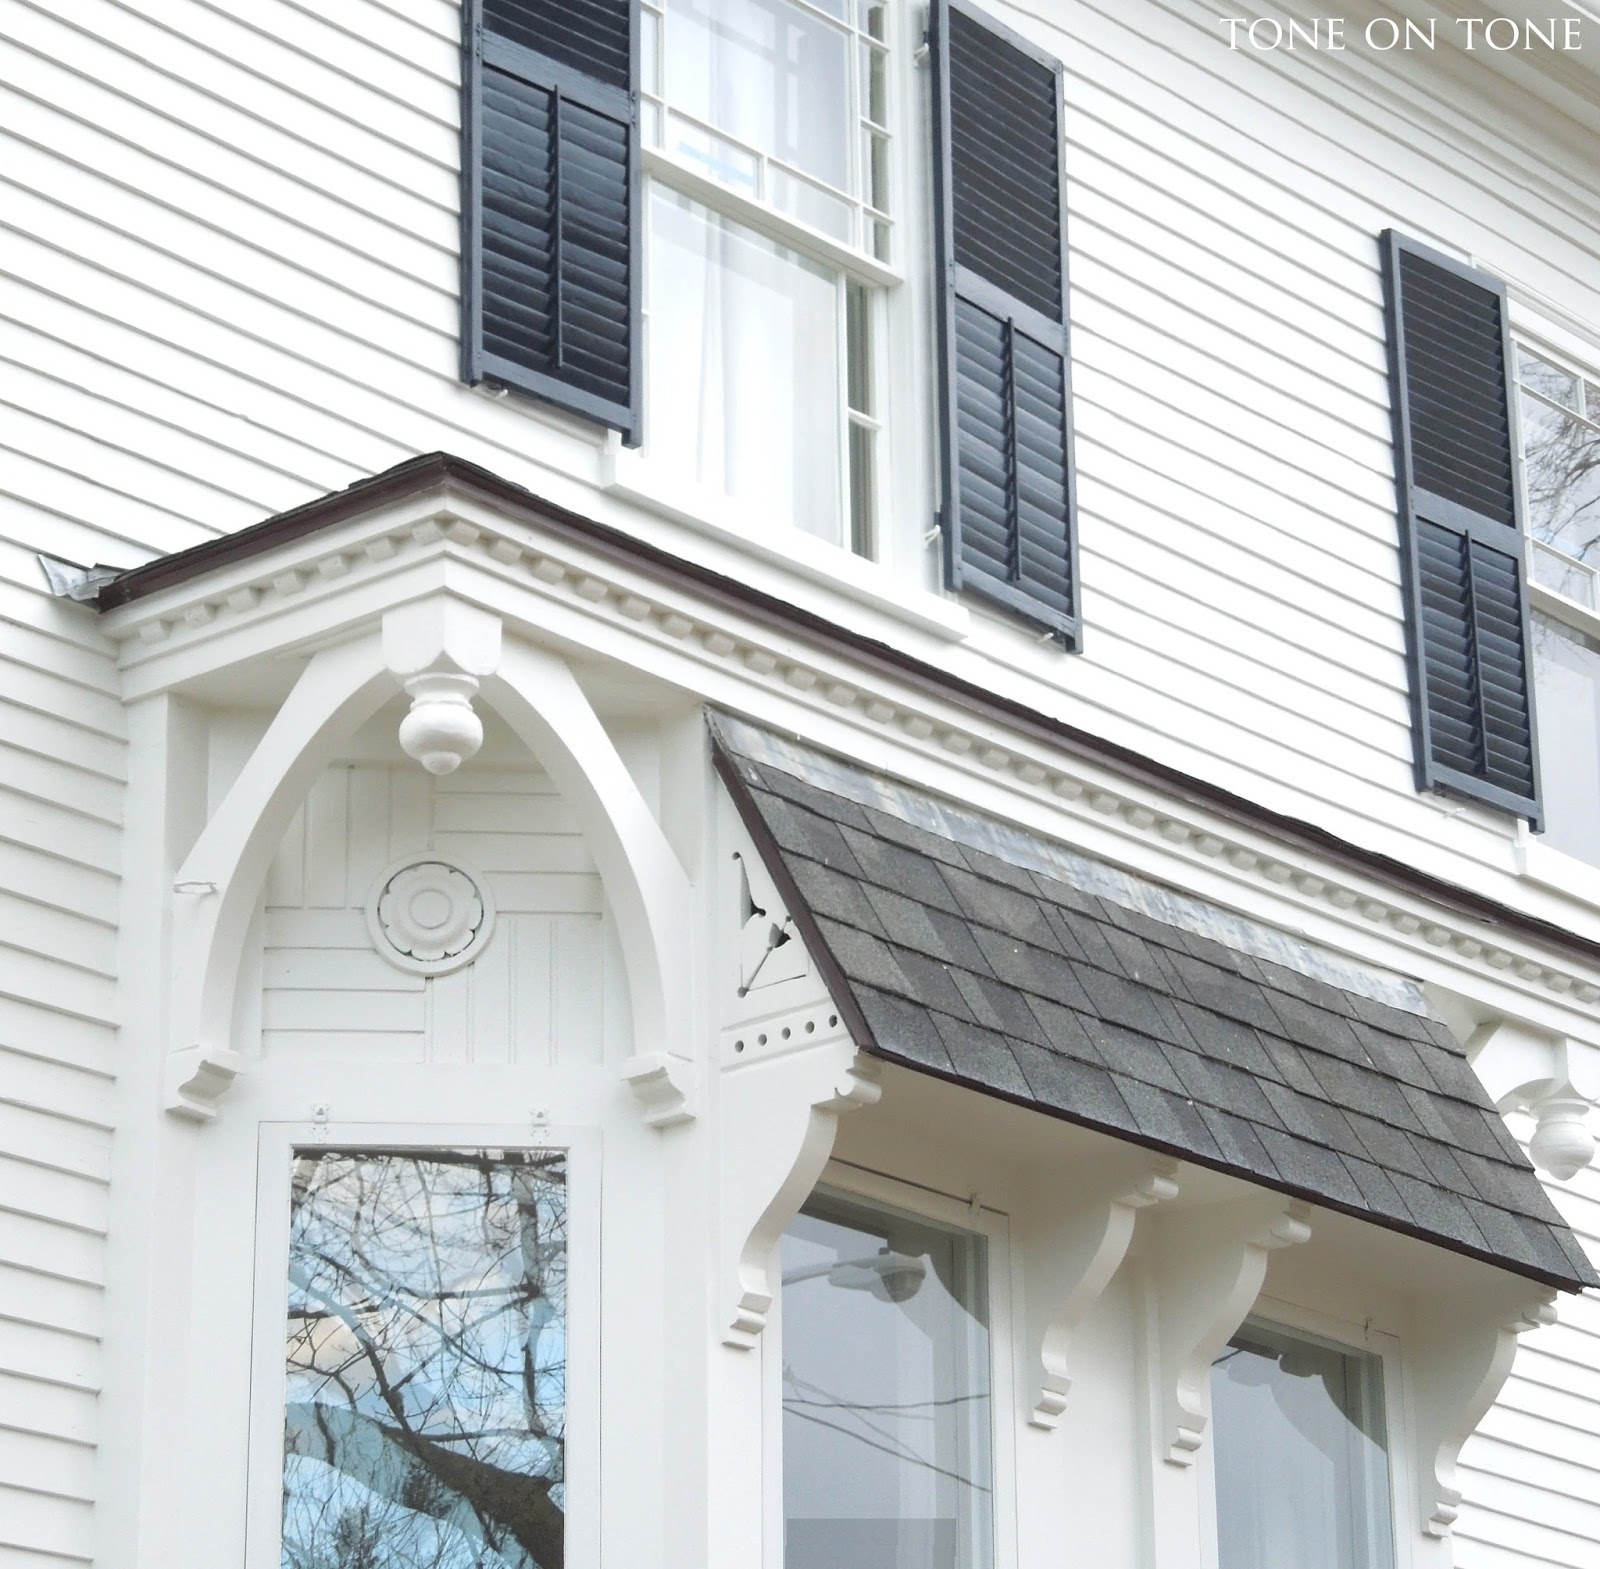 Tone on Tone: Our Maine Home